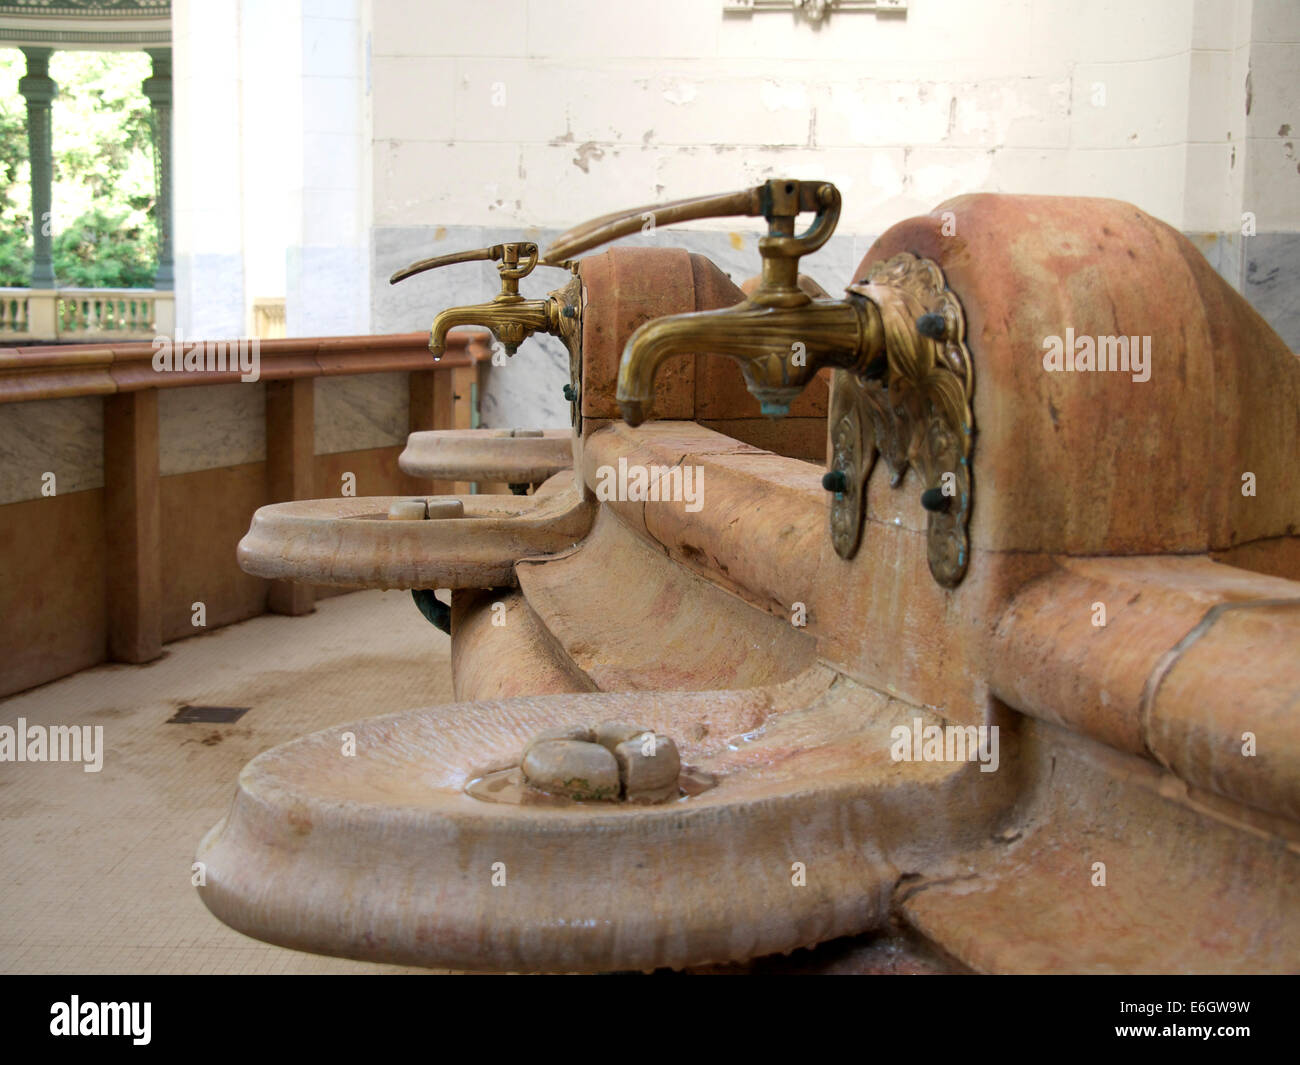 Spring water taps in the Source des Celestins, Vichy, Allier, France - Stock Image